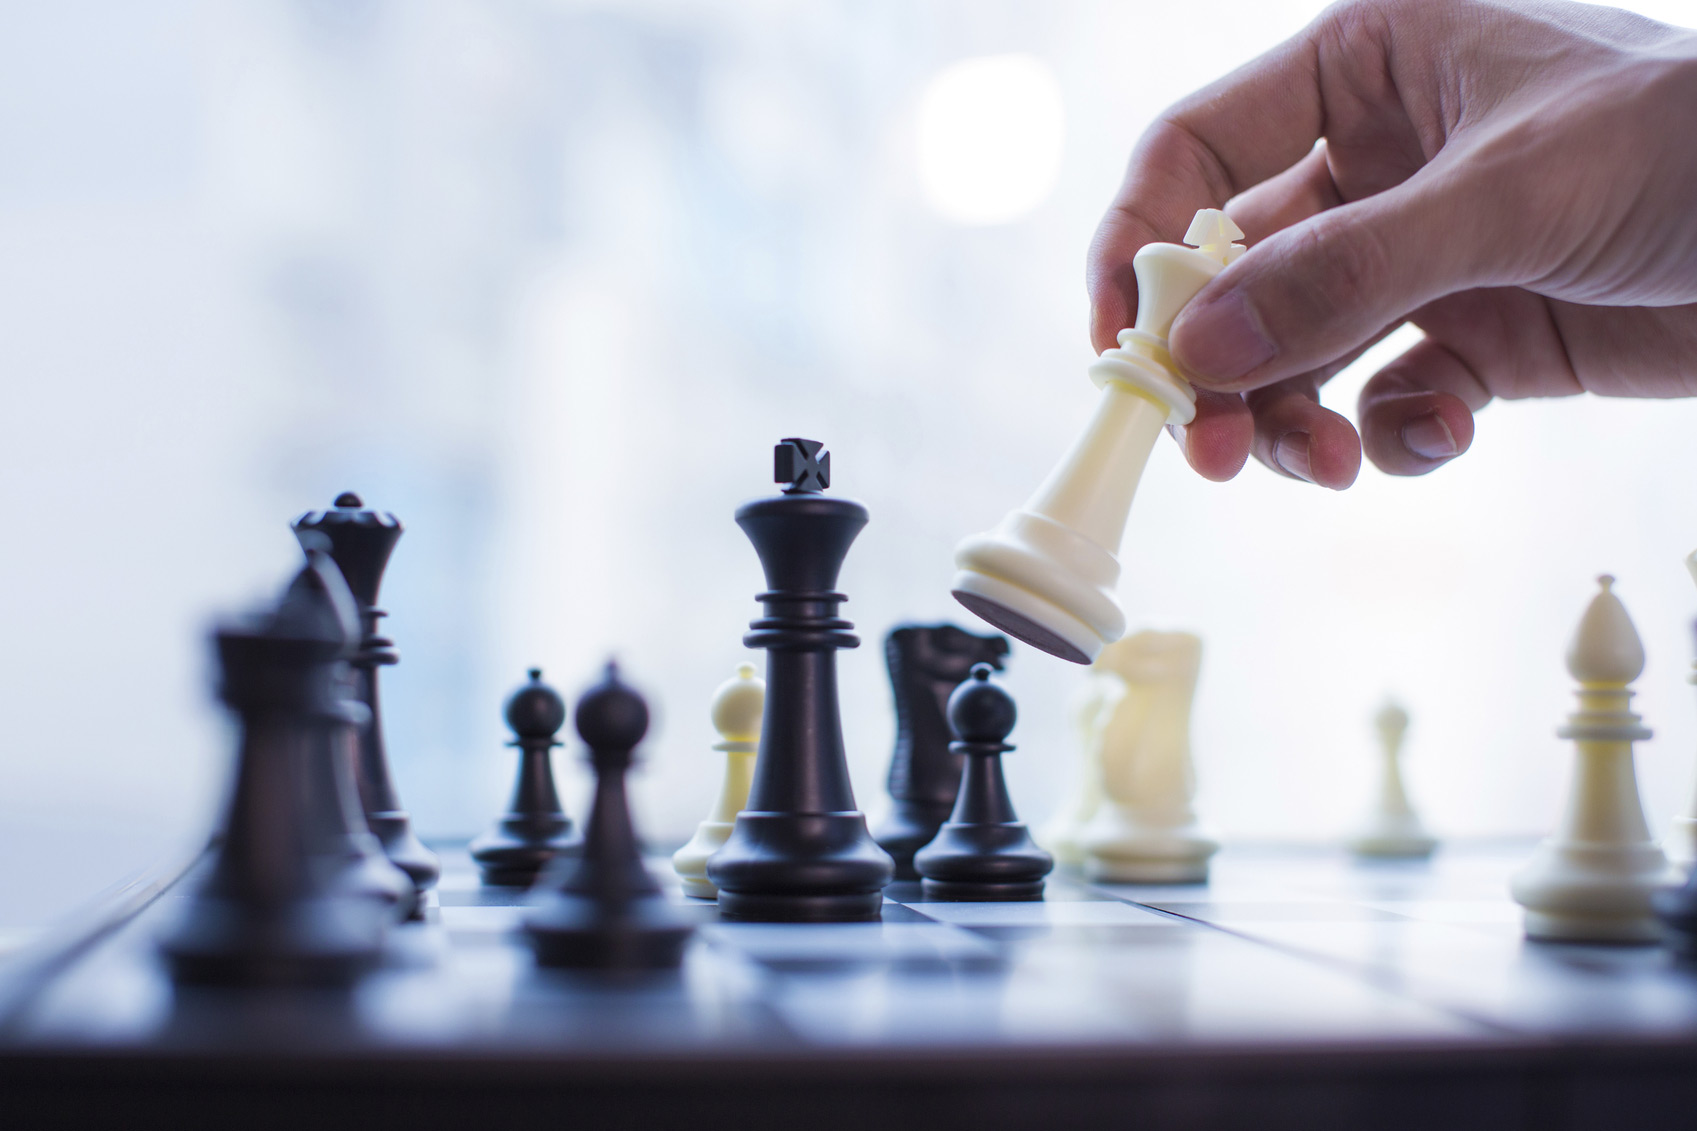 From Tactical to Strategic: Developing an Action Plan